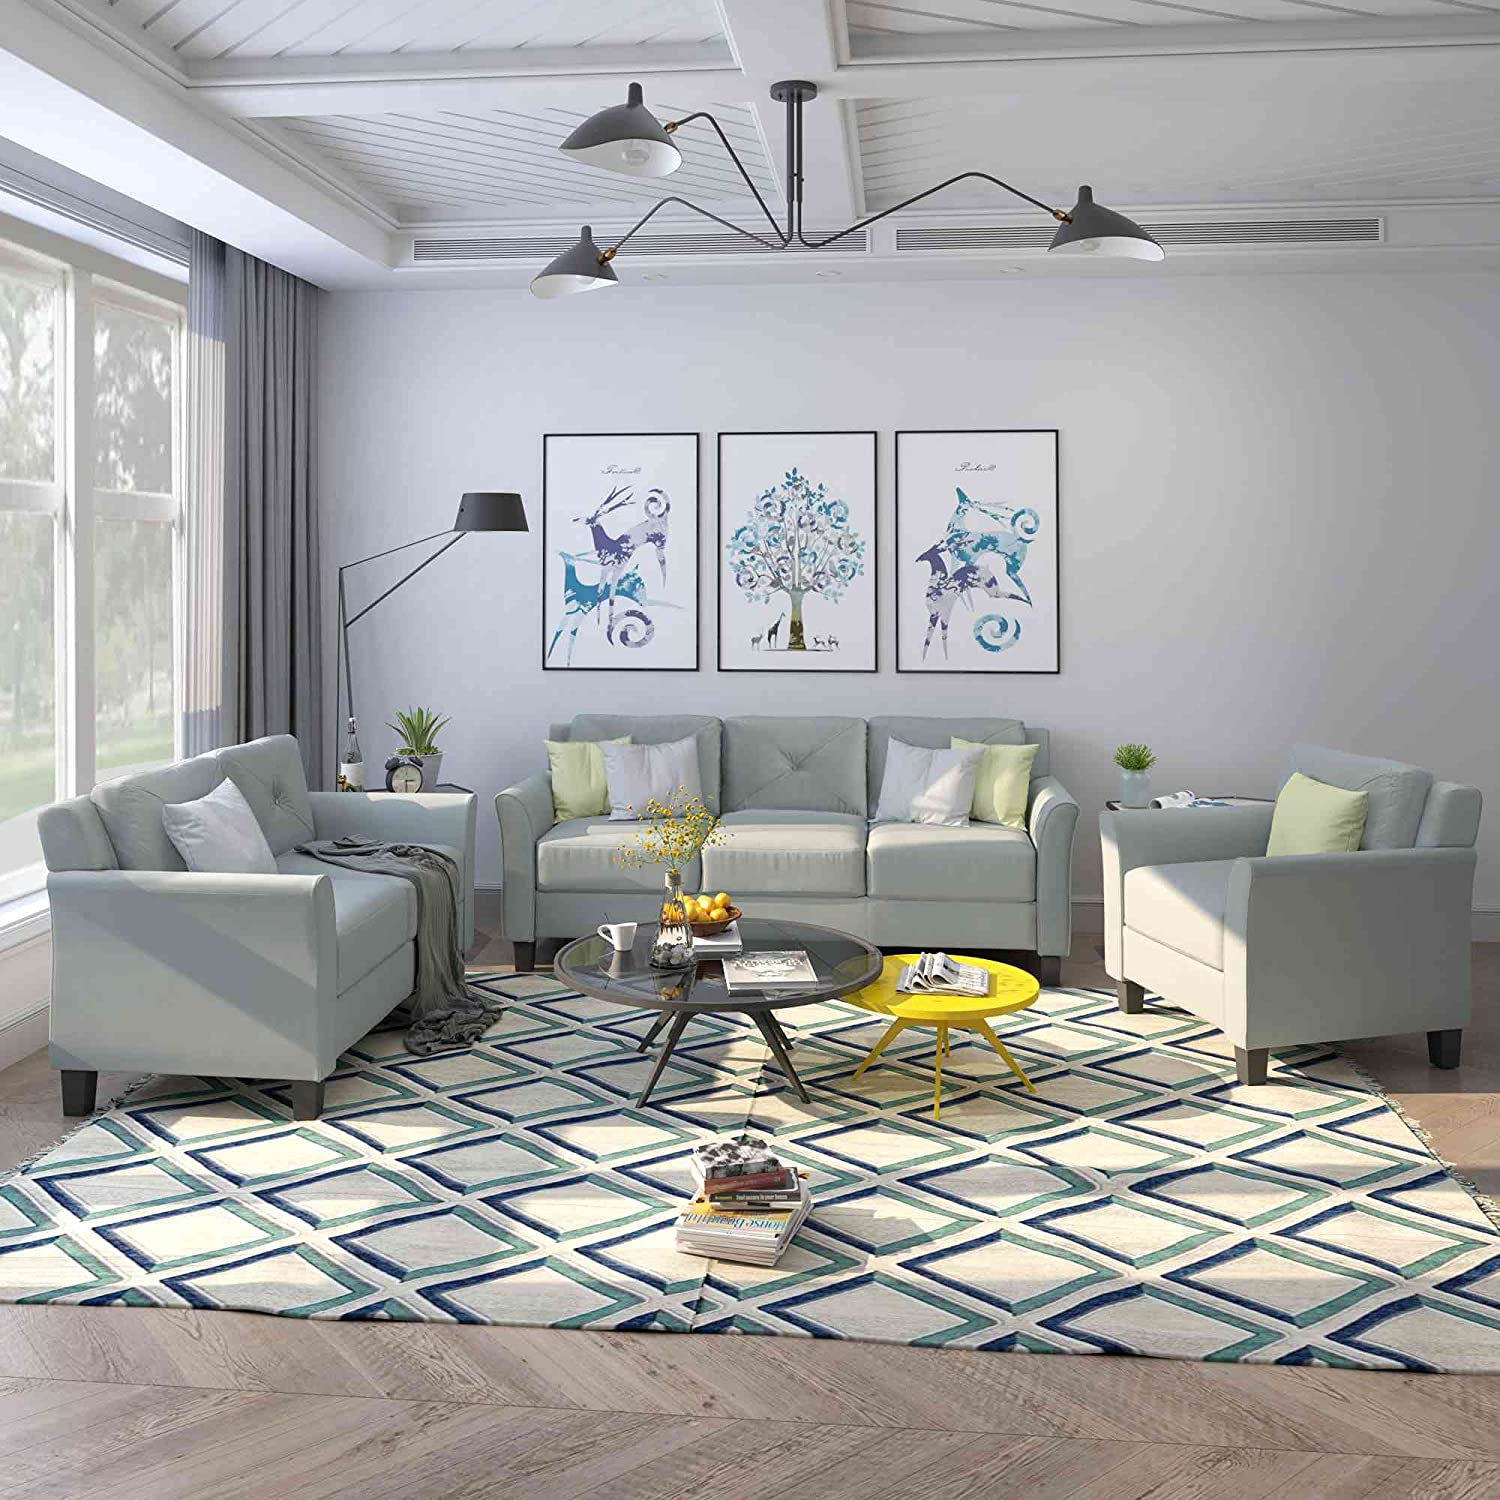 Tulib 3 Piece Living Room Sofa Set, Button Tufted Sectional Couch, One 3-Seat Sofa & Loveseat and Armchair, (1+2+3 ), Grey